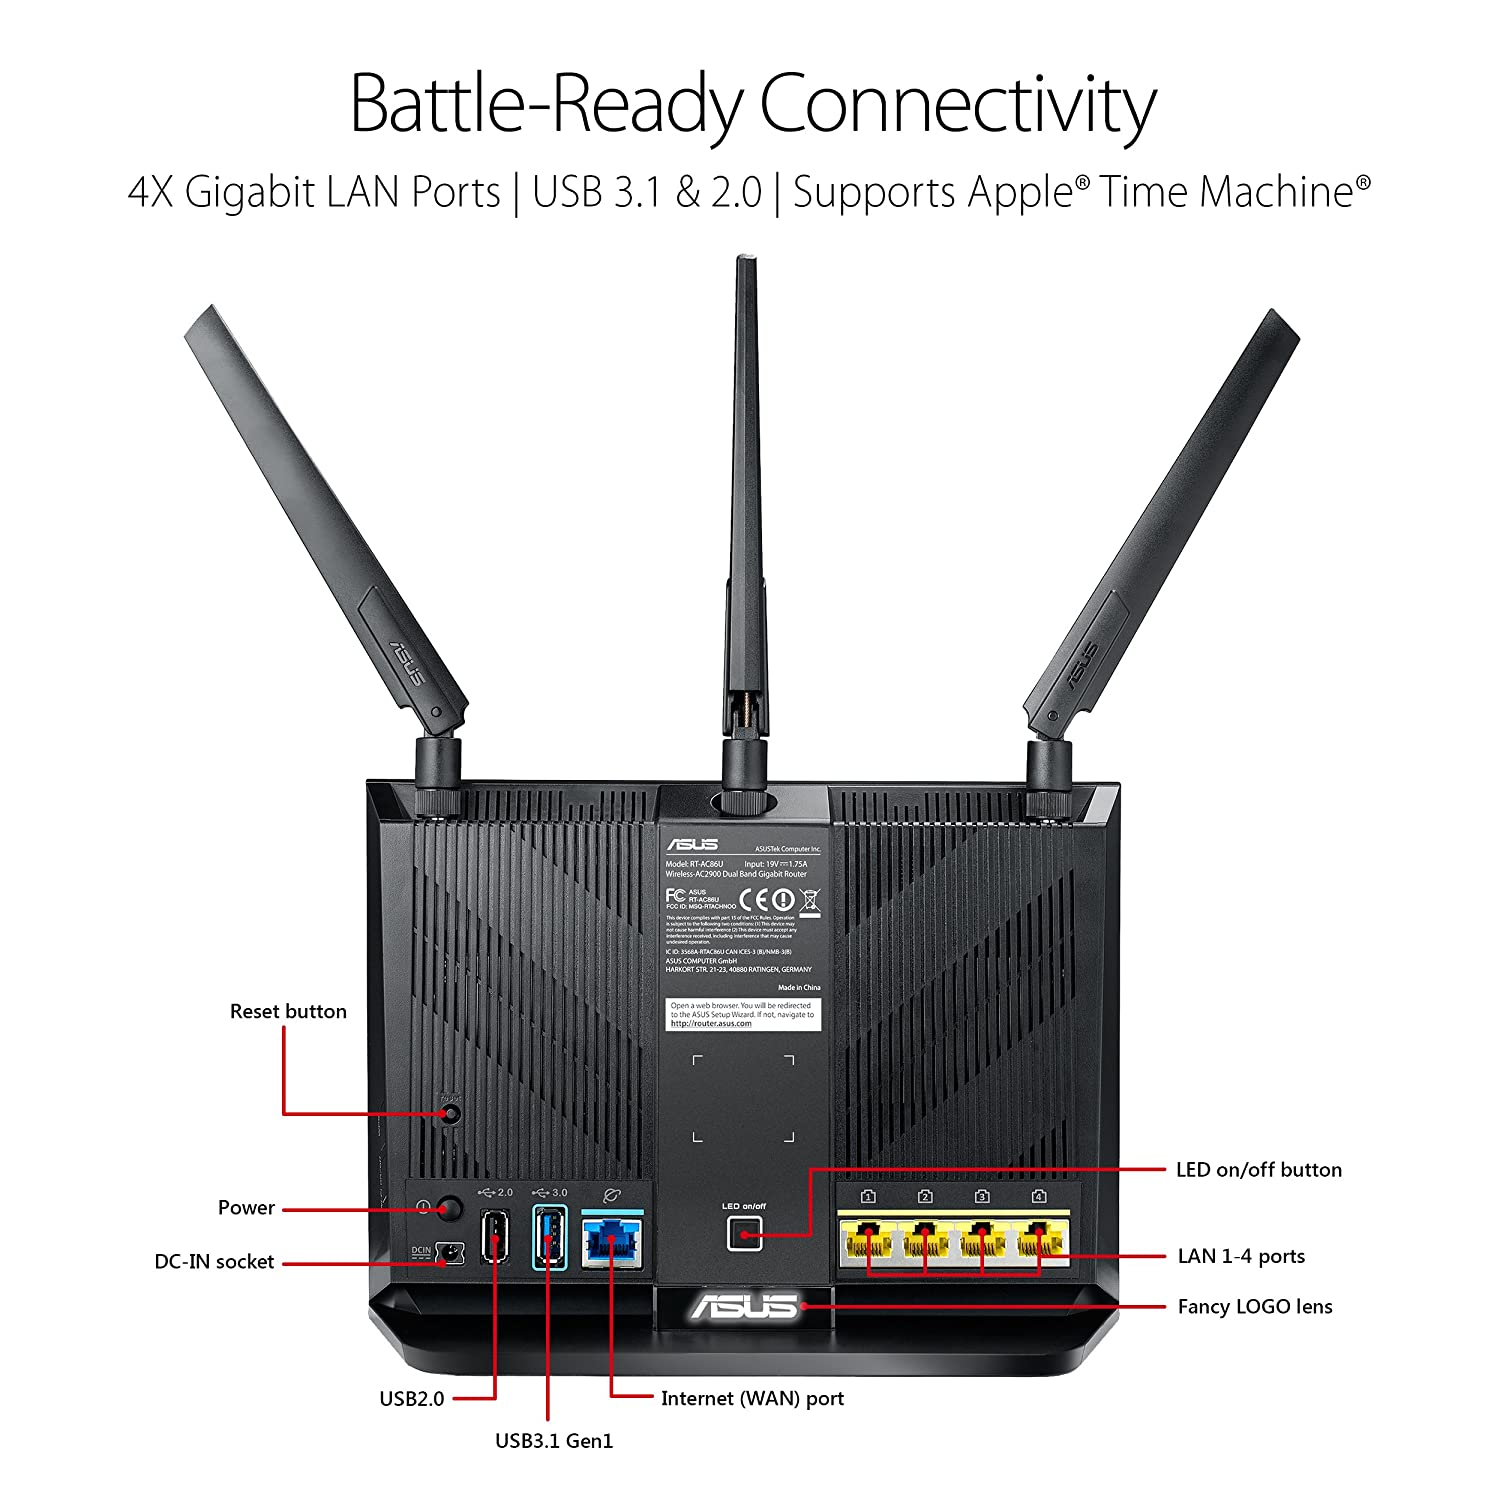 ASUS AC2900 WiFi Dual-band Gigabit Wireless Router with 1.8GHz Dual-core Processor and AiProtection Network Security Powered by Trend Micro AiMesh Whole Home WiFi System Compatible RT-AC86U